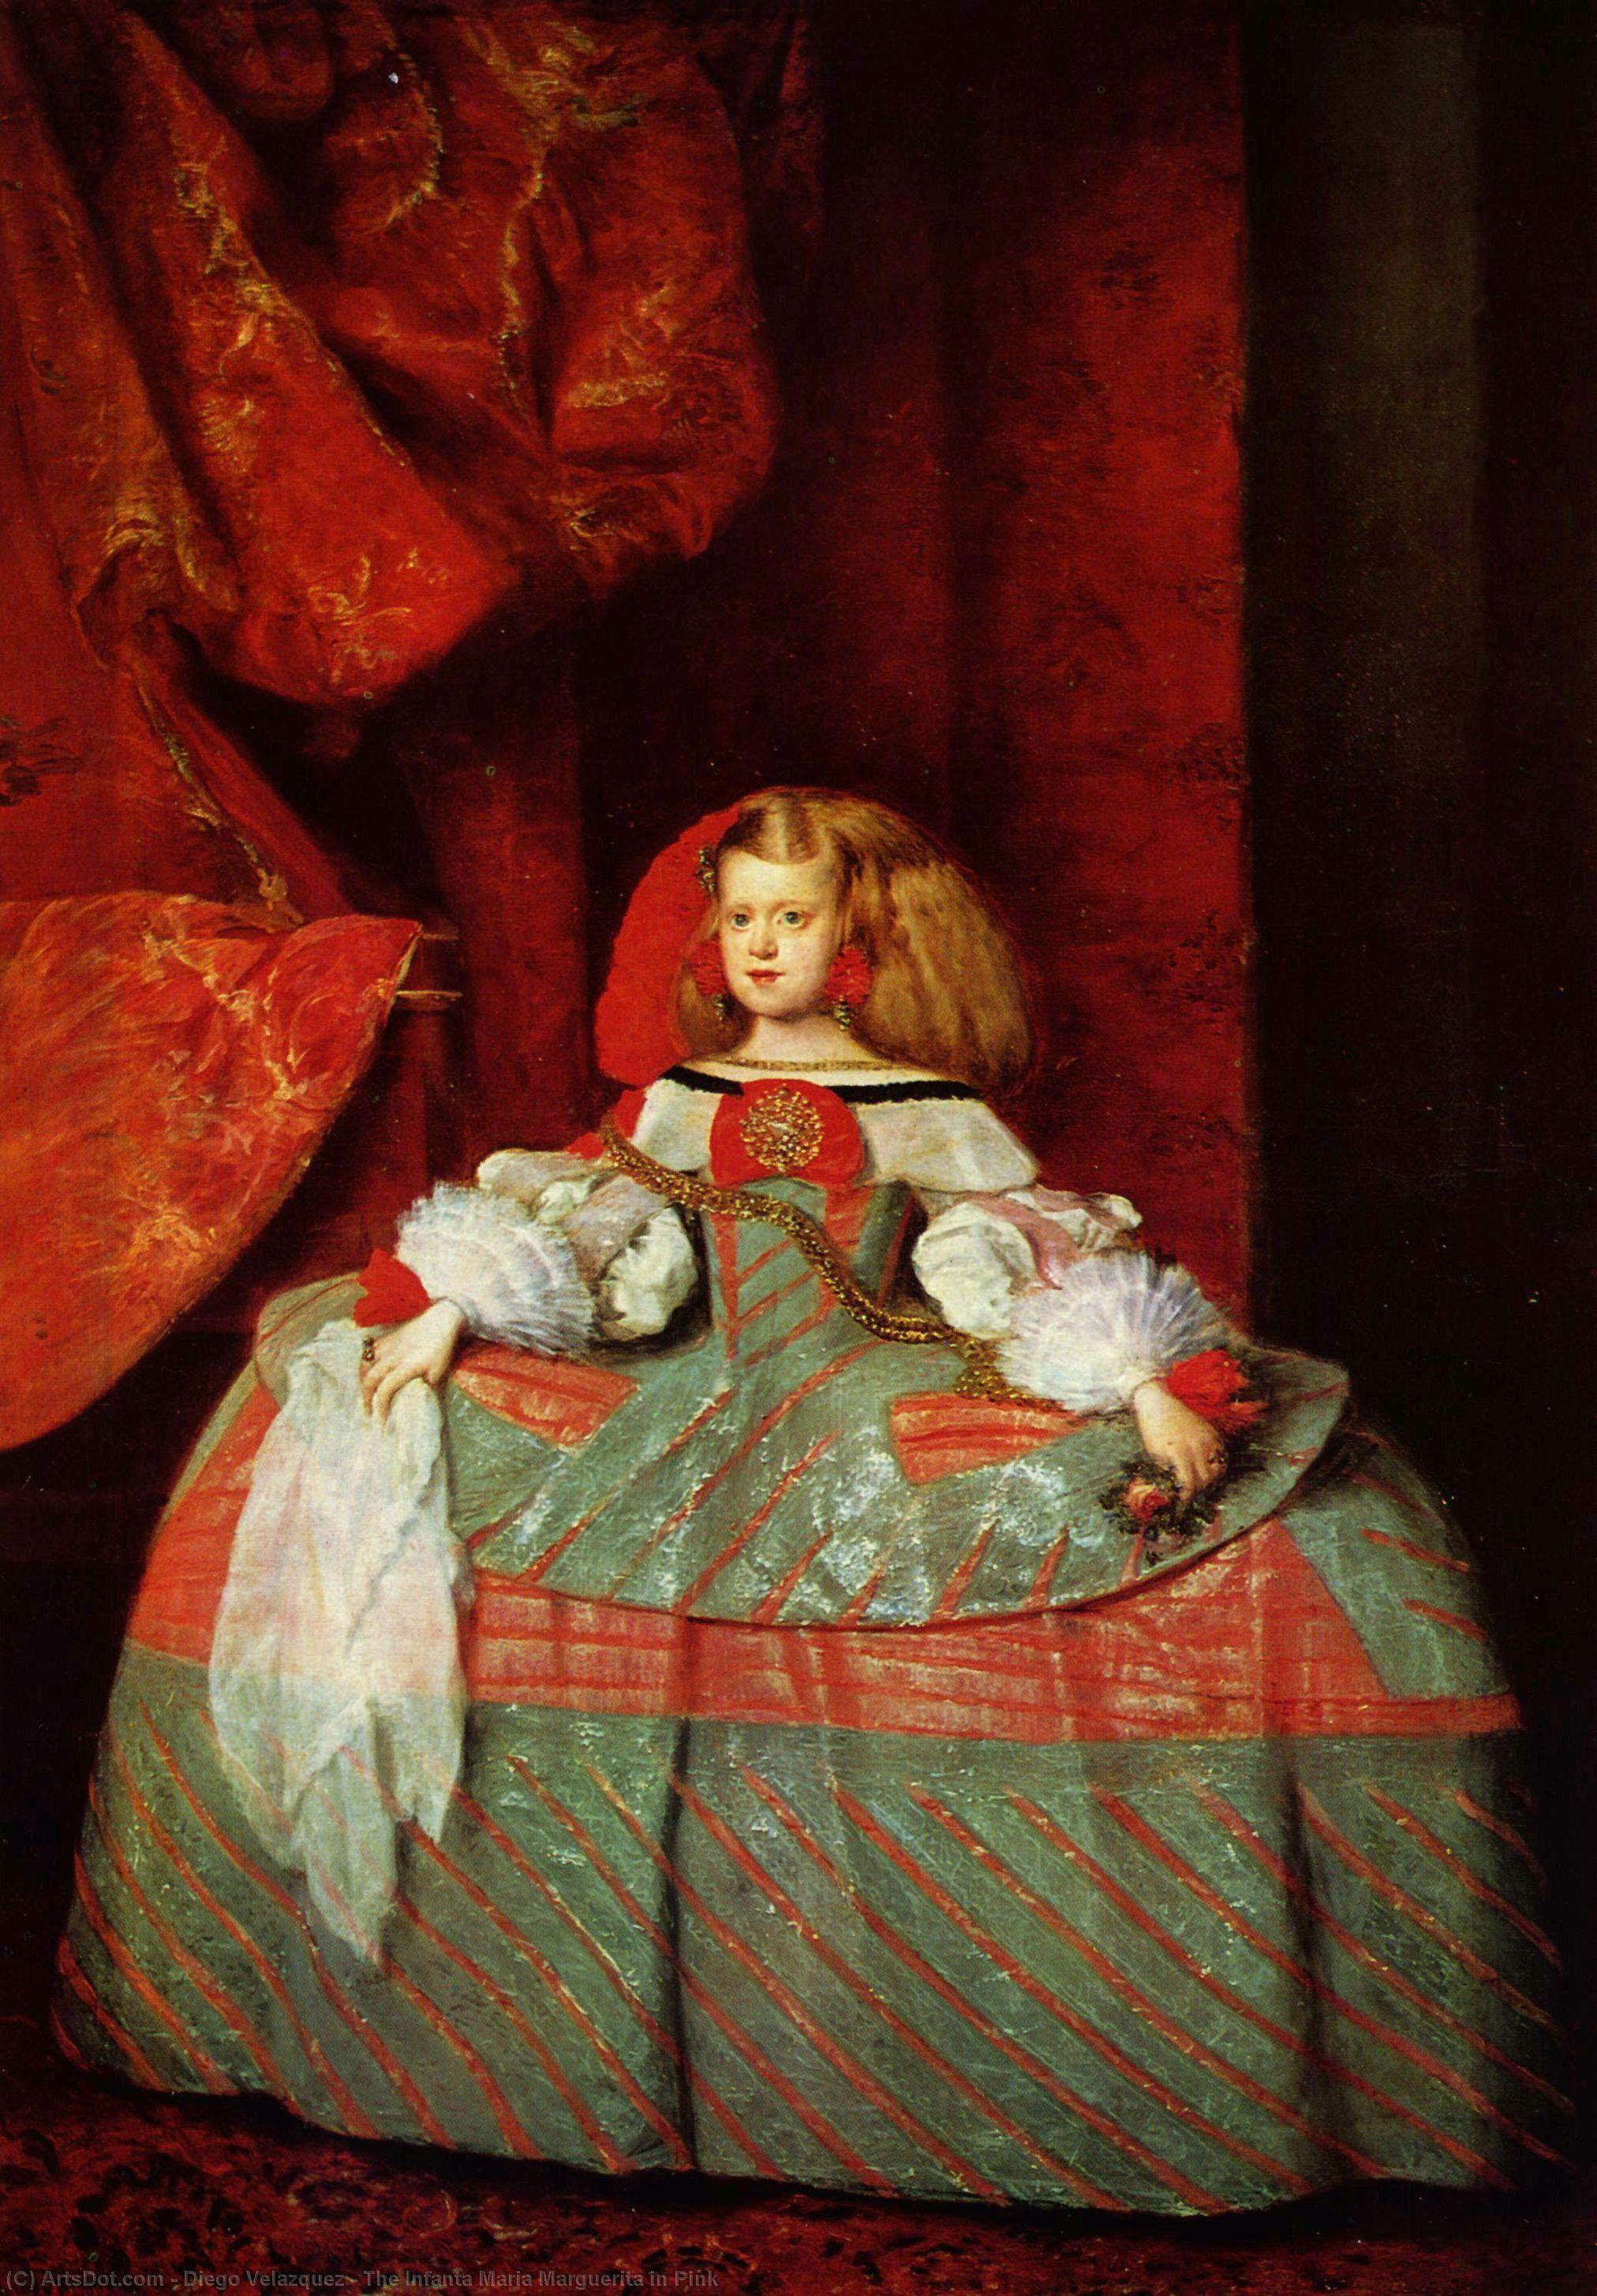 Wikioo.org - The Encyclopedia of Fine Arts - Painting, Artwork by Diego Velazquez - The Infanta Maria Marguerita in Pink